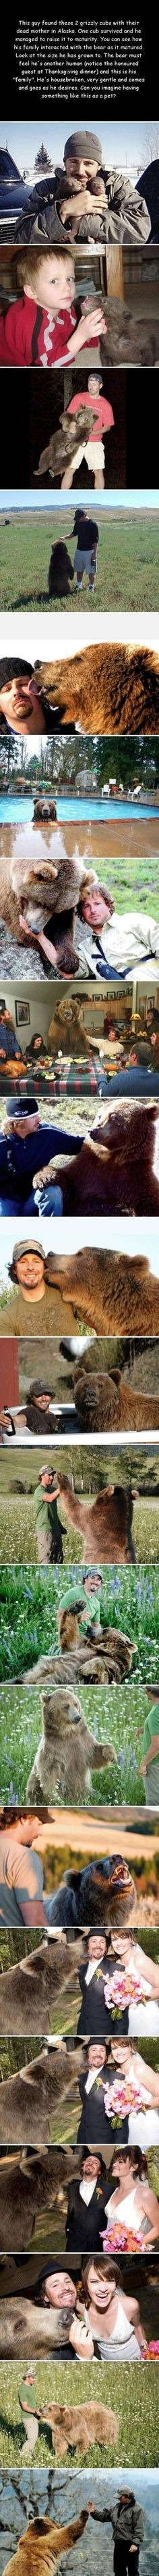 Animal Pictures and Photos: A man and his bears